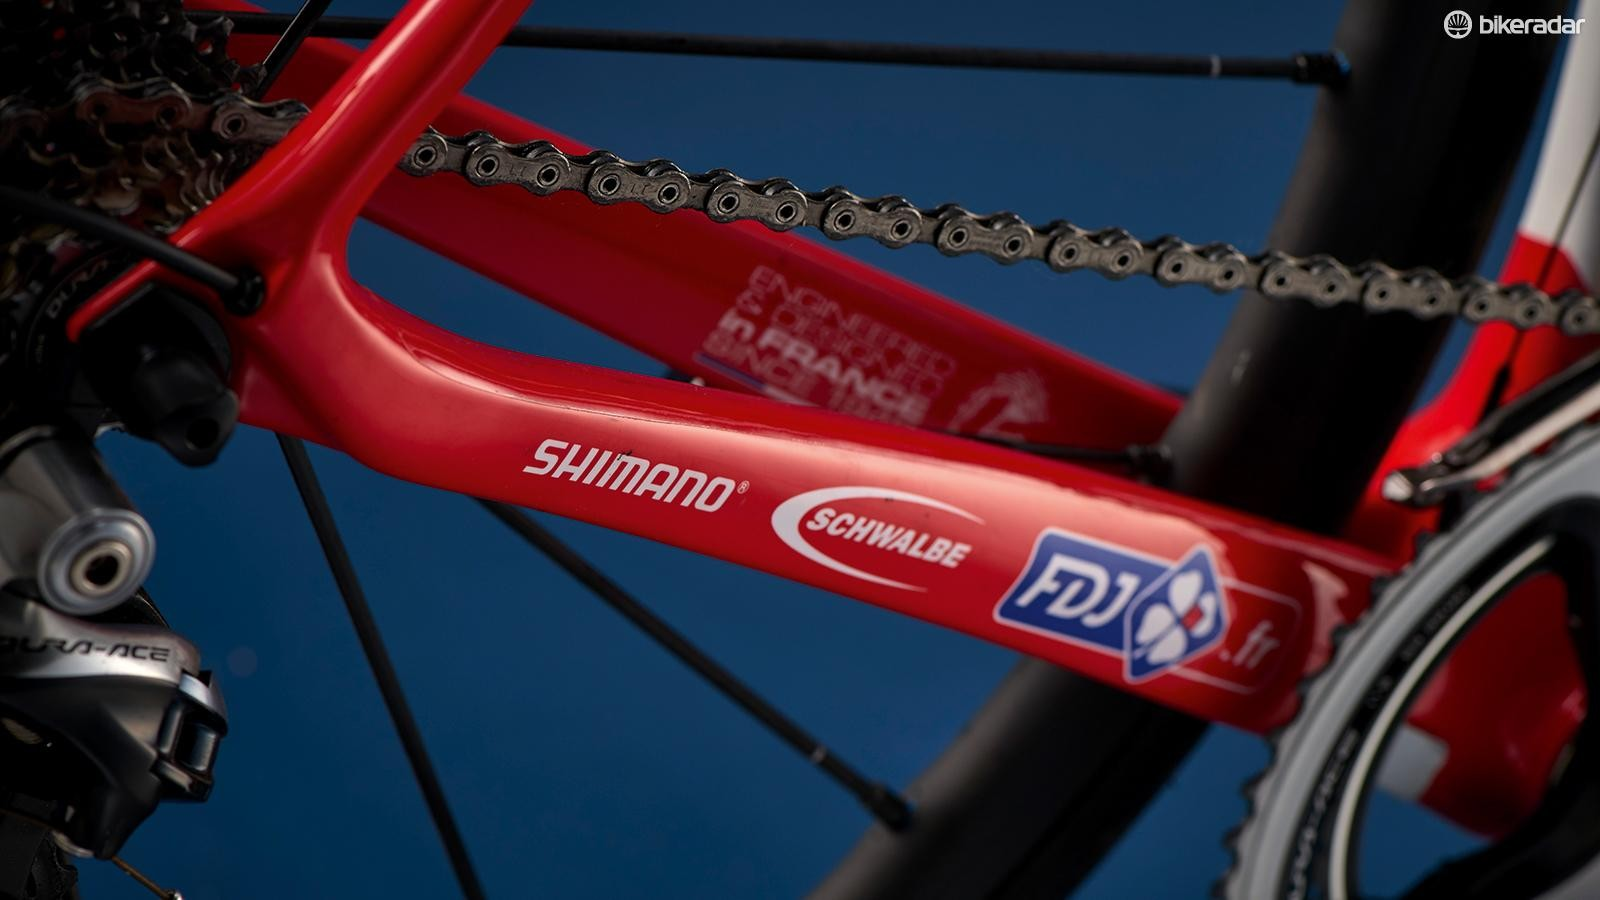 The Lapierre's chainstays are a tad longer than most for more stability on the cobbled Classics